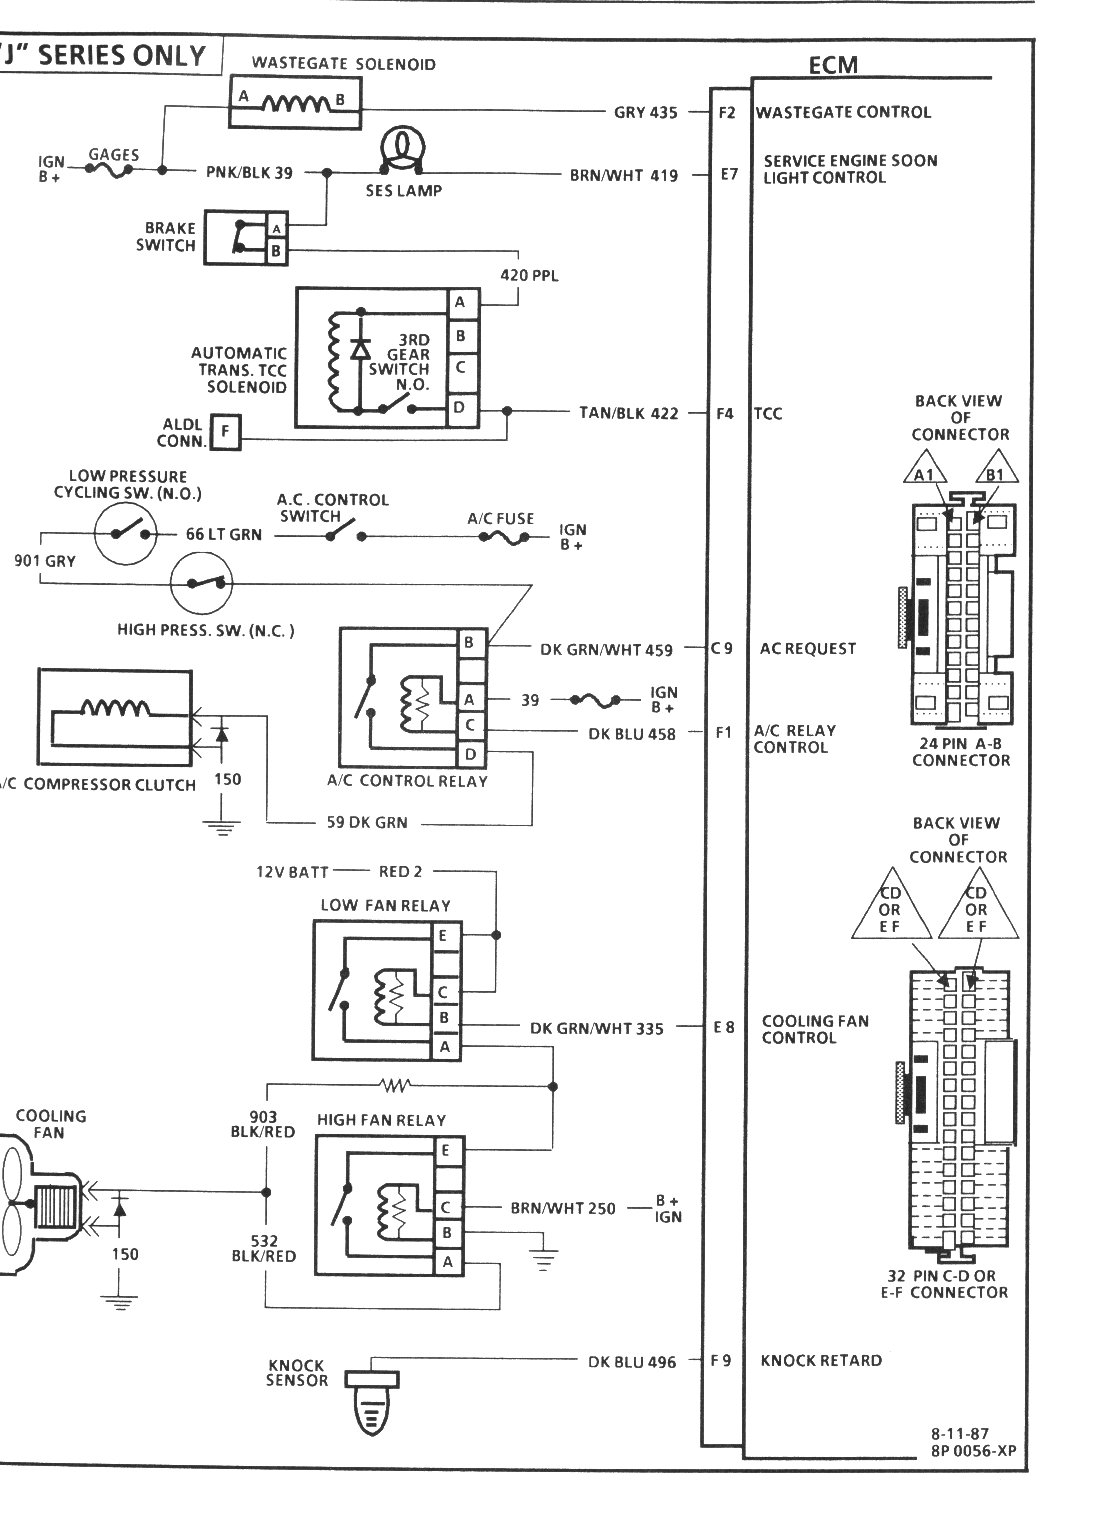 749sunbird3 index of gearhead efi wiring 1227749 ddec 3 wiring diagrams at eliteediting.co